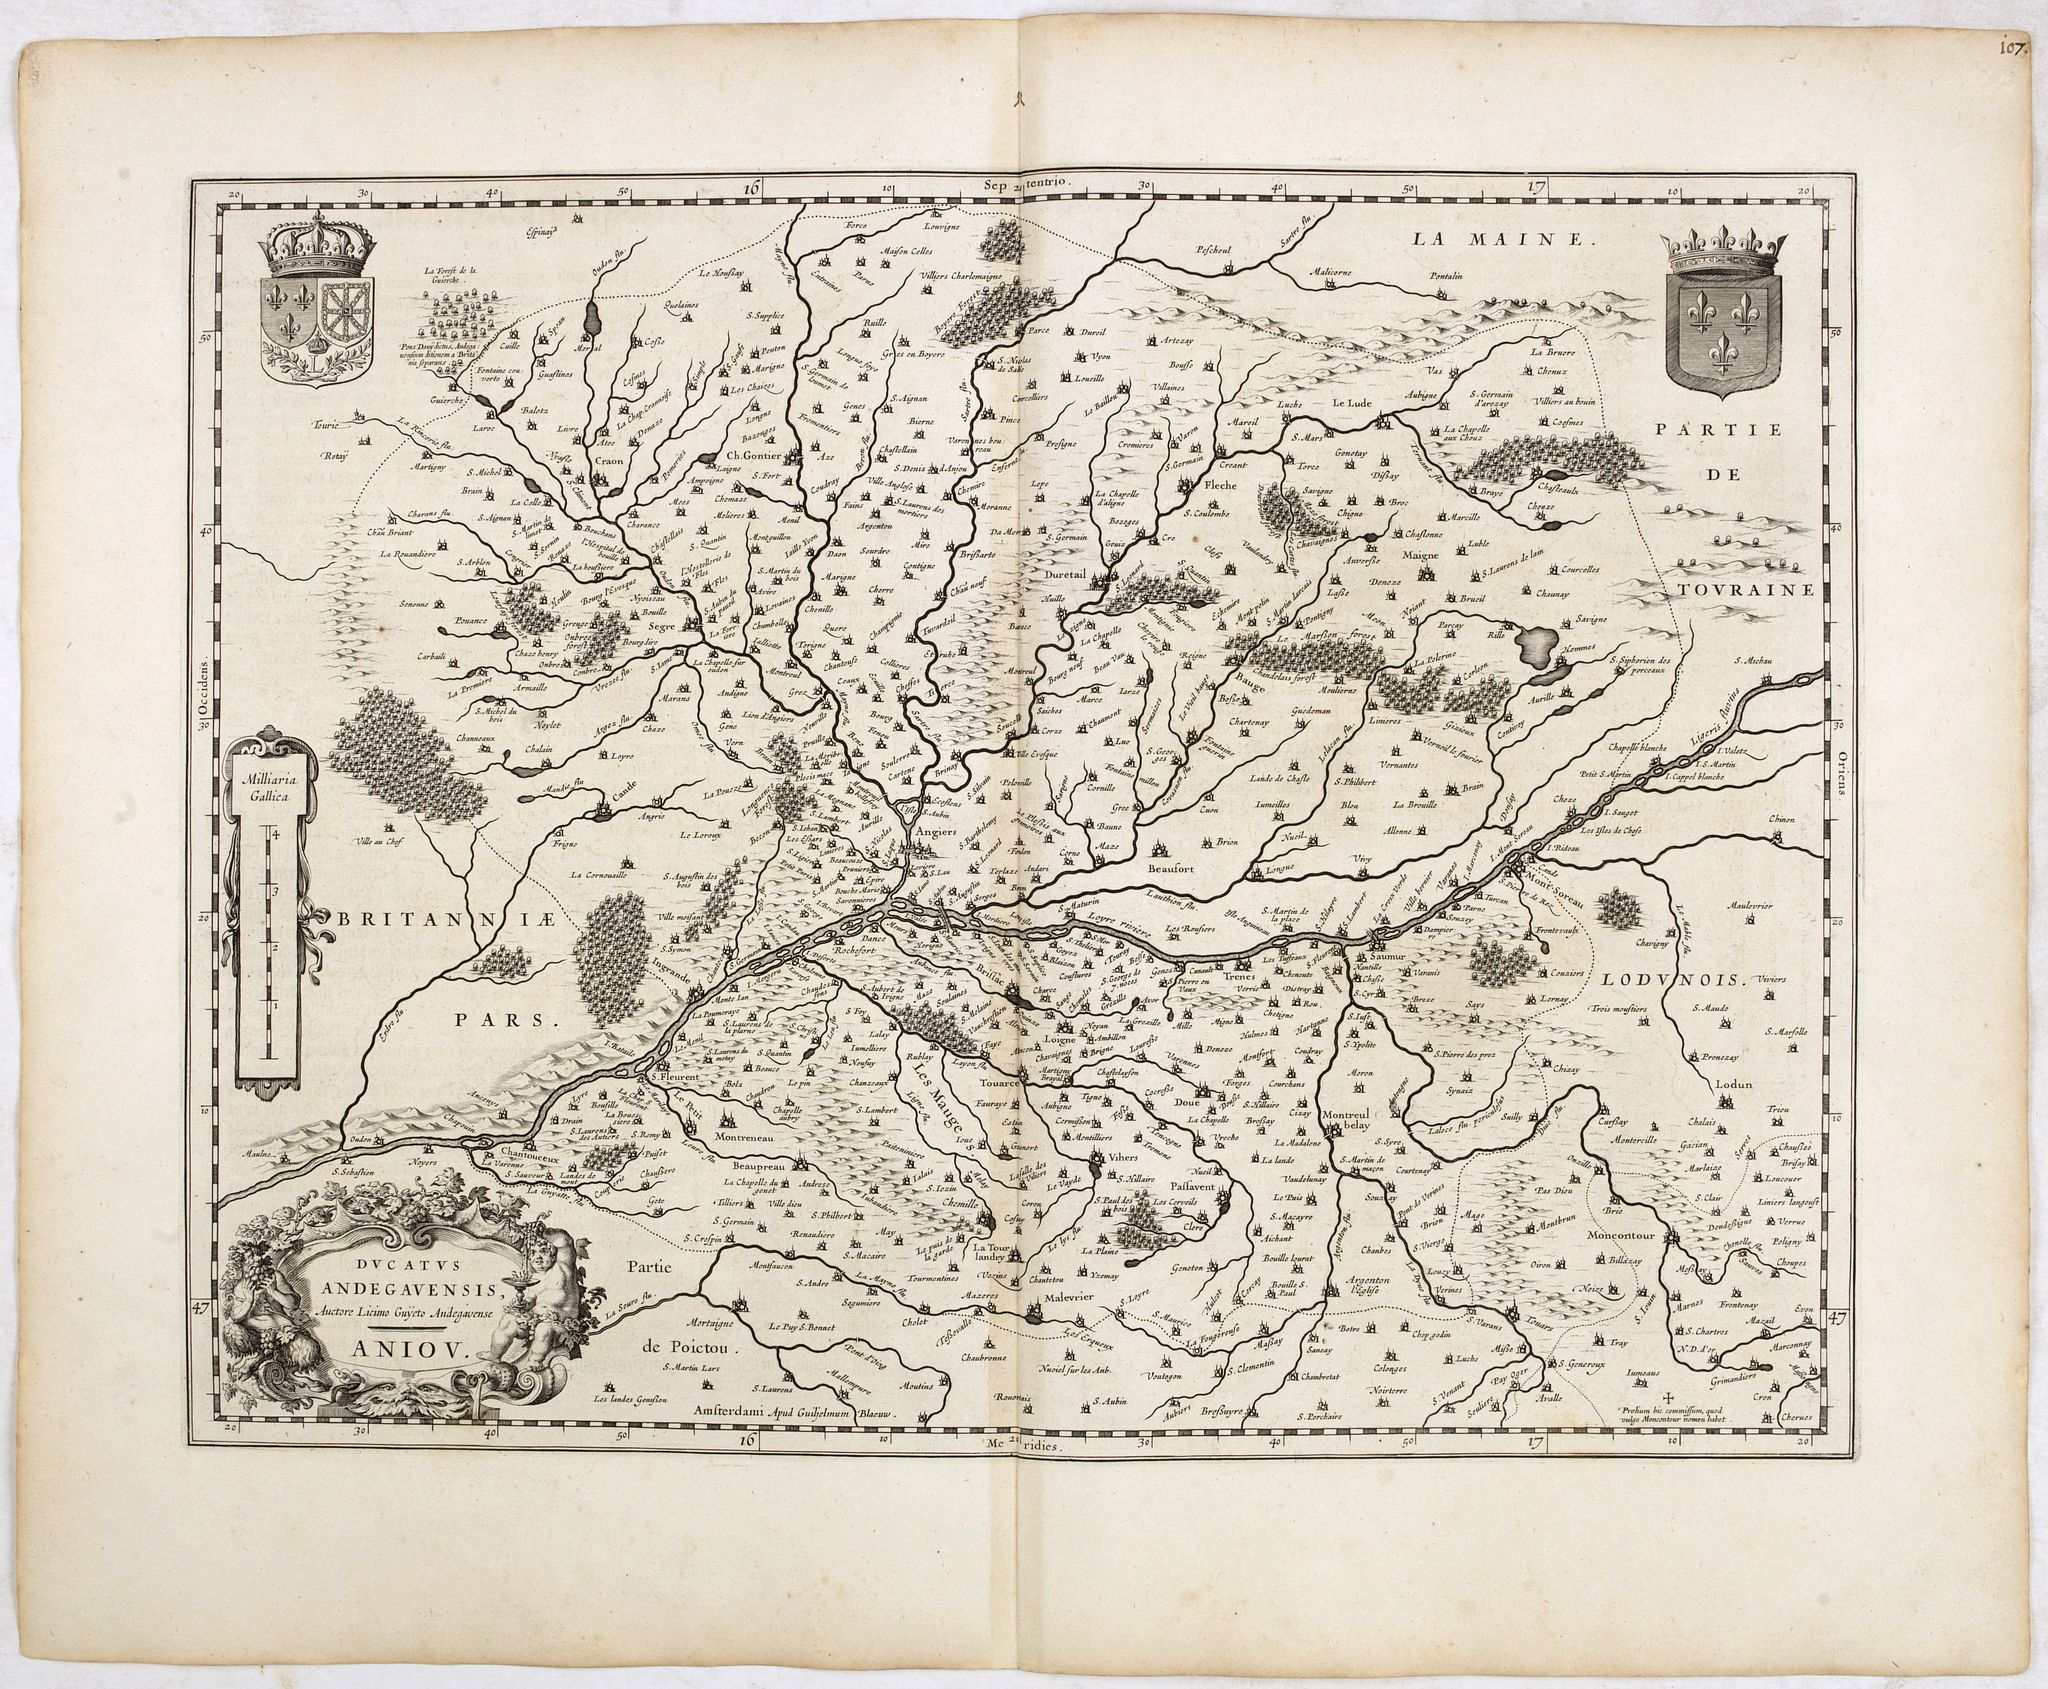 BLAEU, W.,  Ducatus Andegavensis, Auctore Licimo Guÿeto Andegavense. Aniou., antique map, old maps